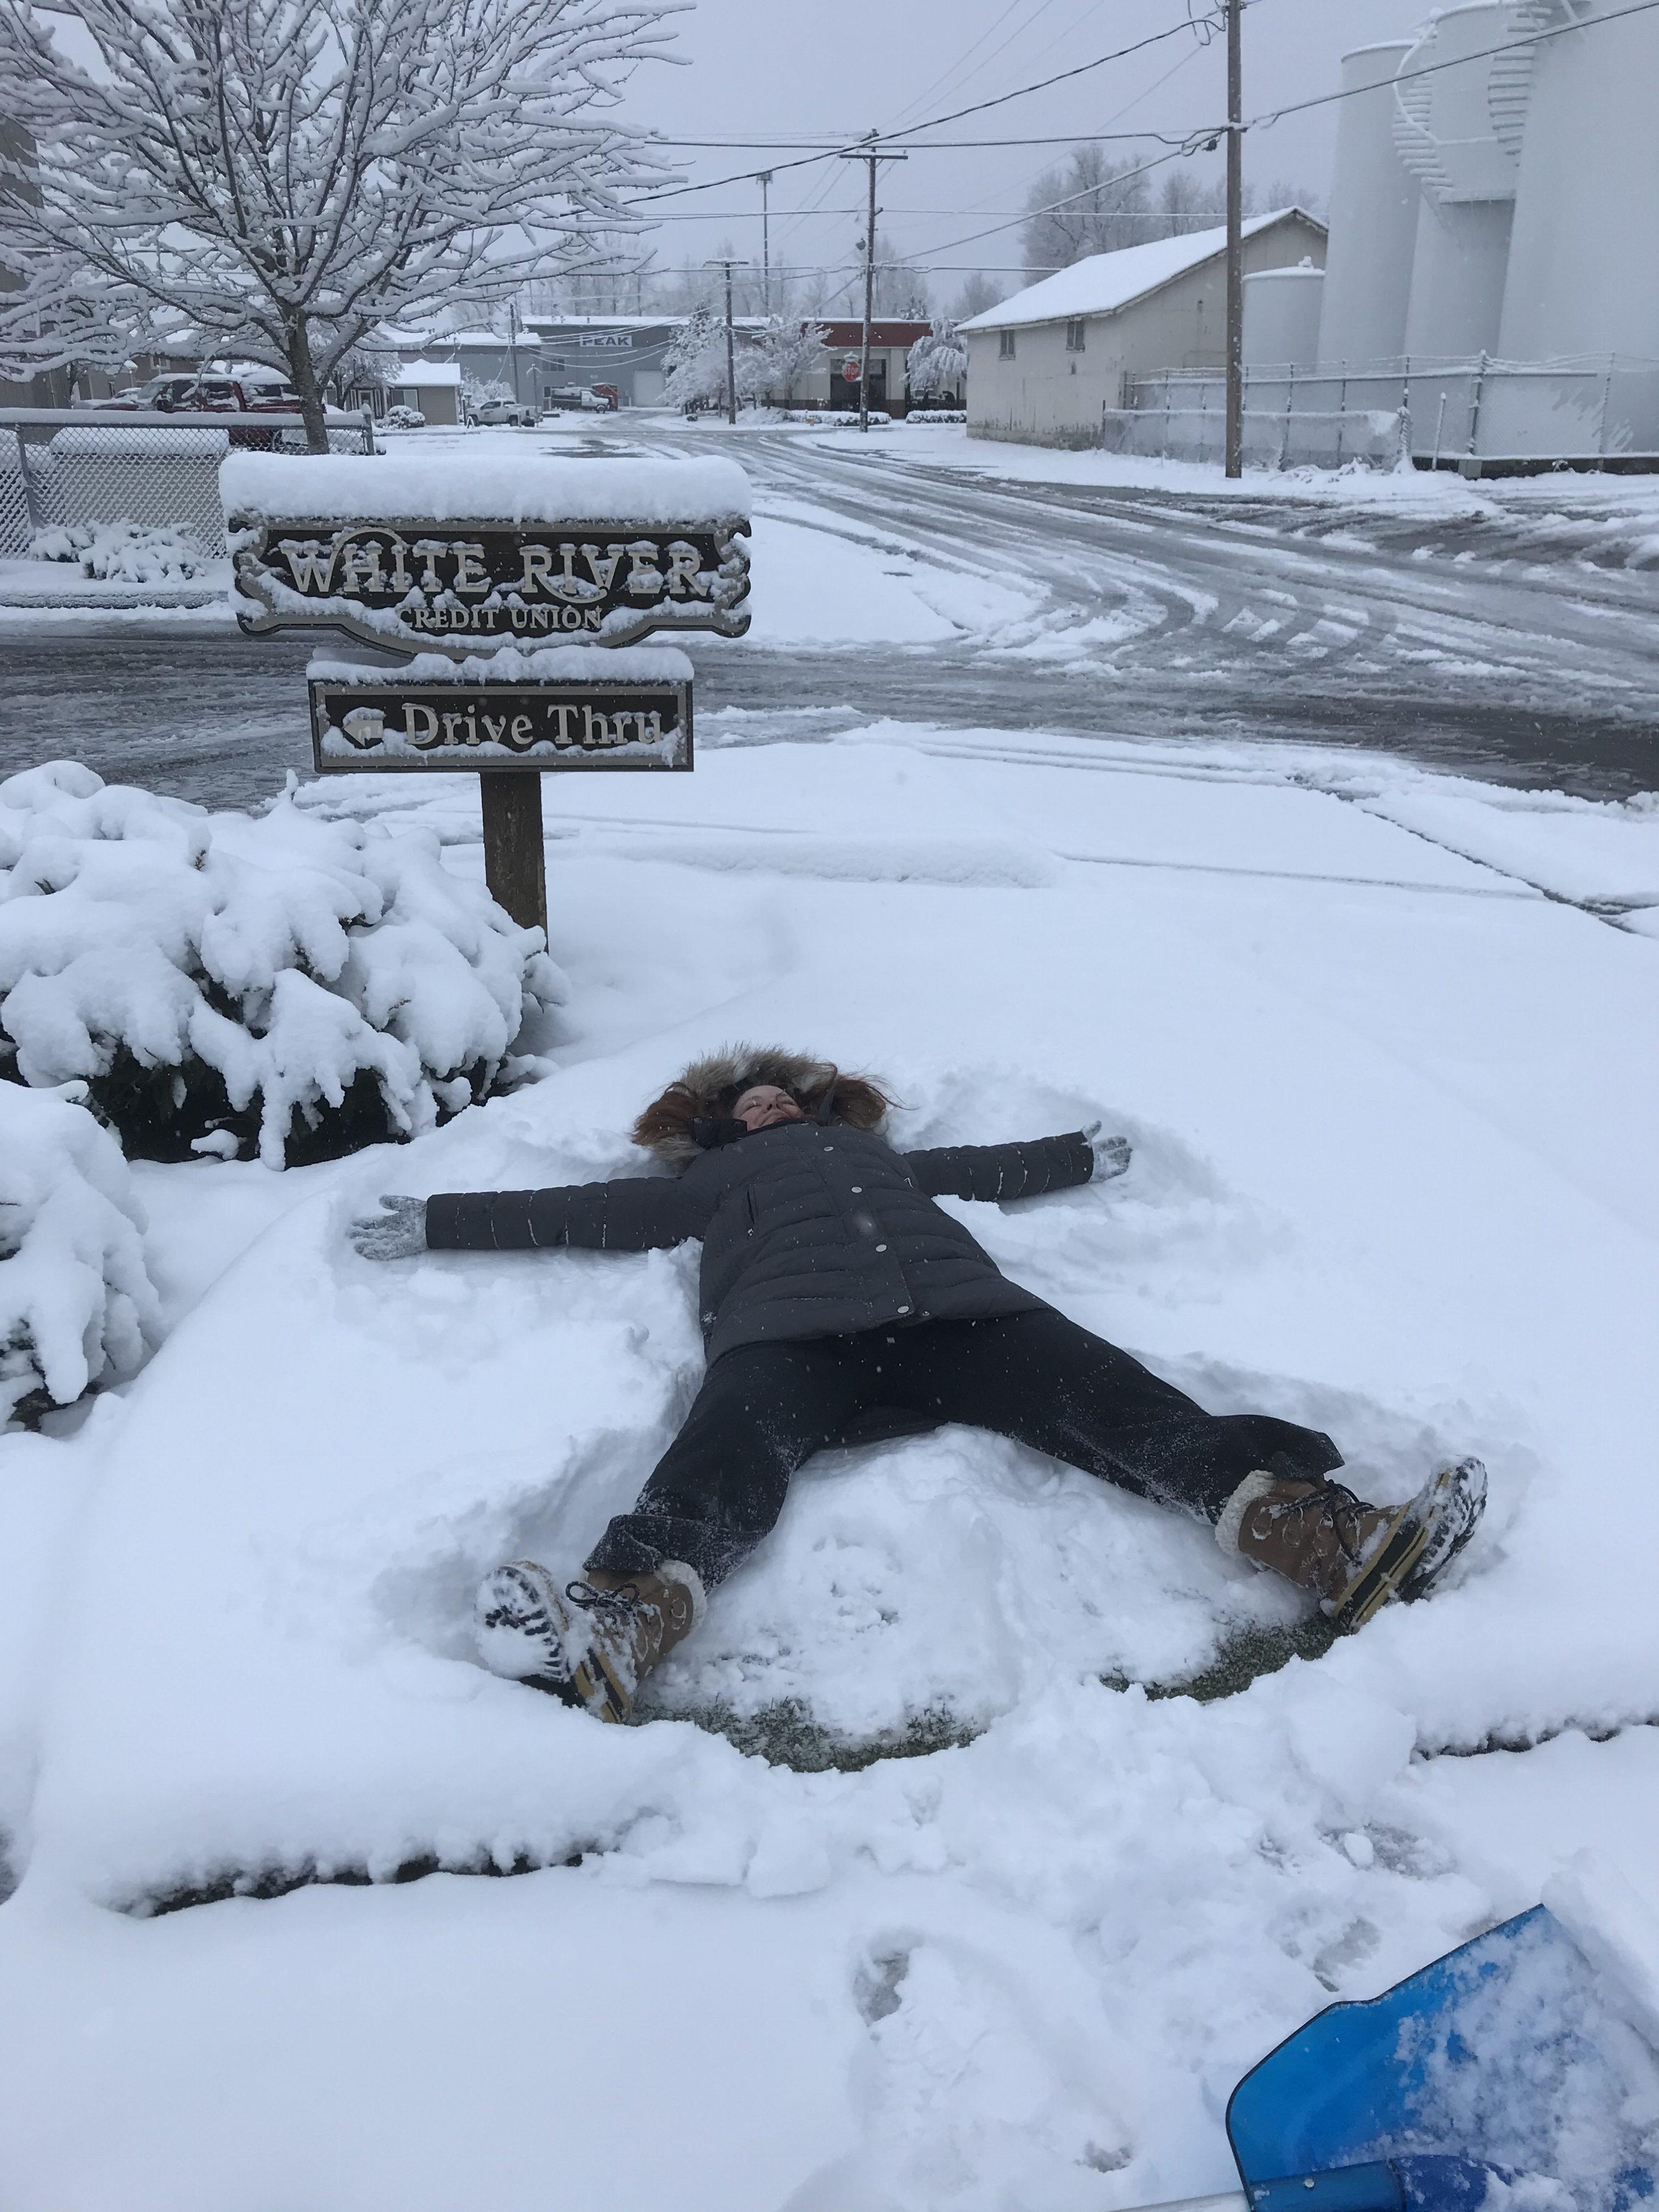 Person doing snow angel